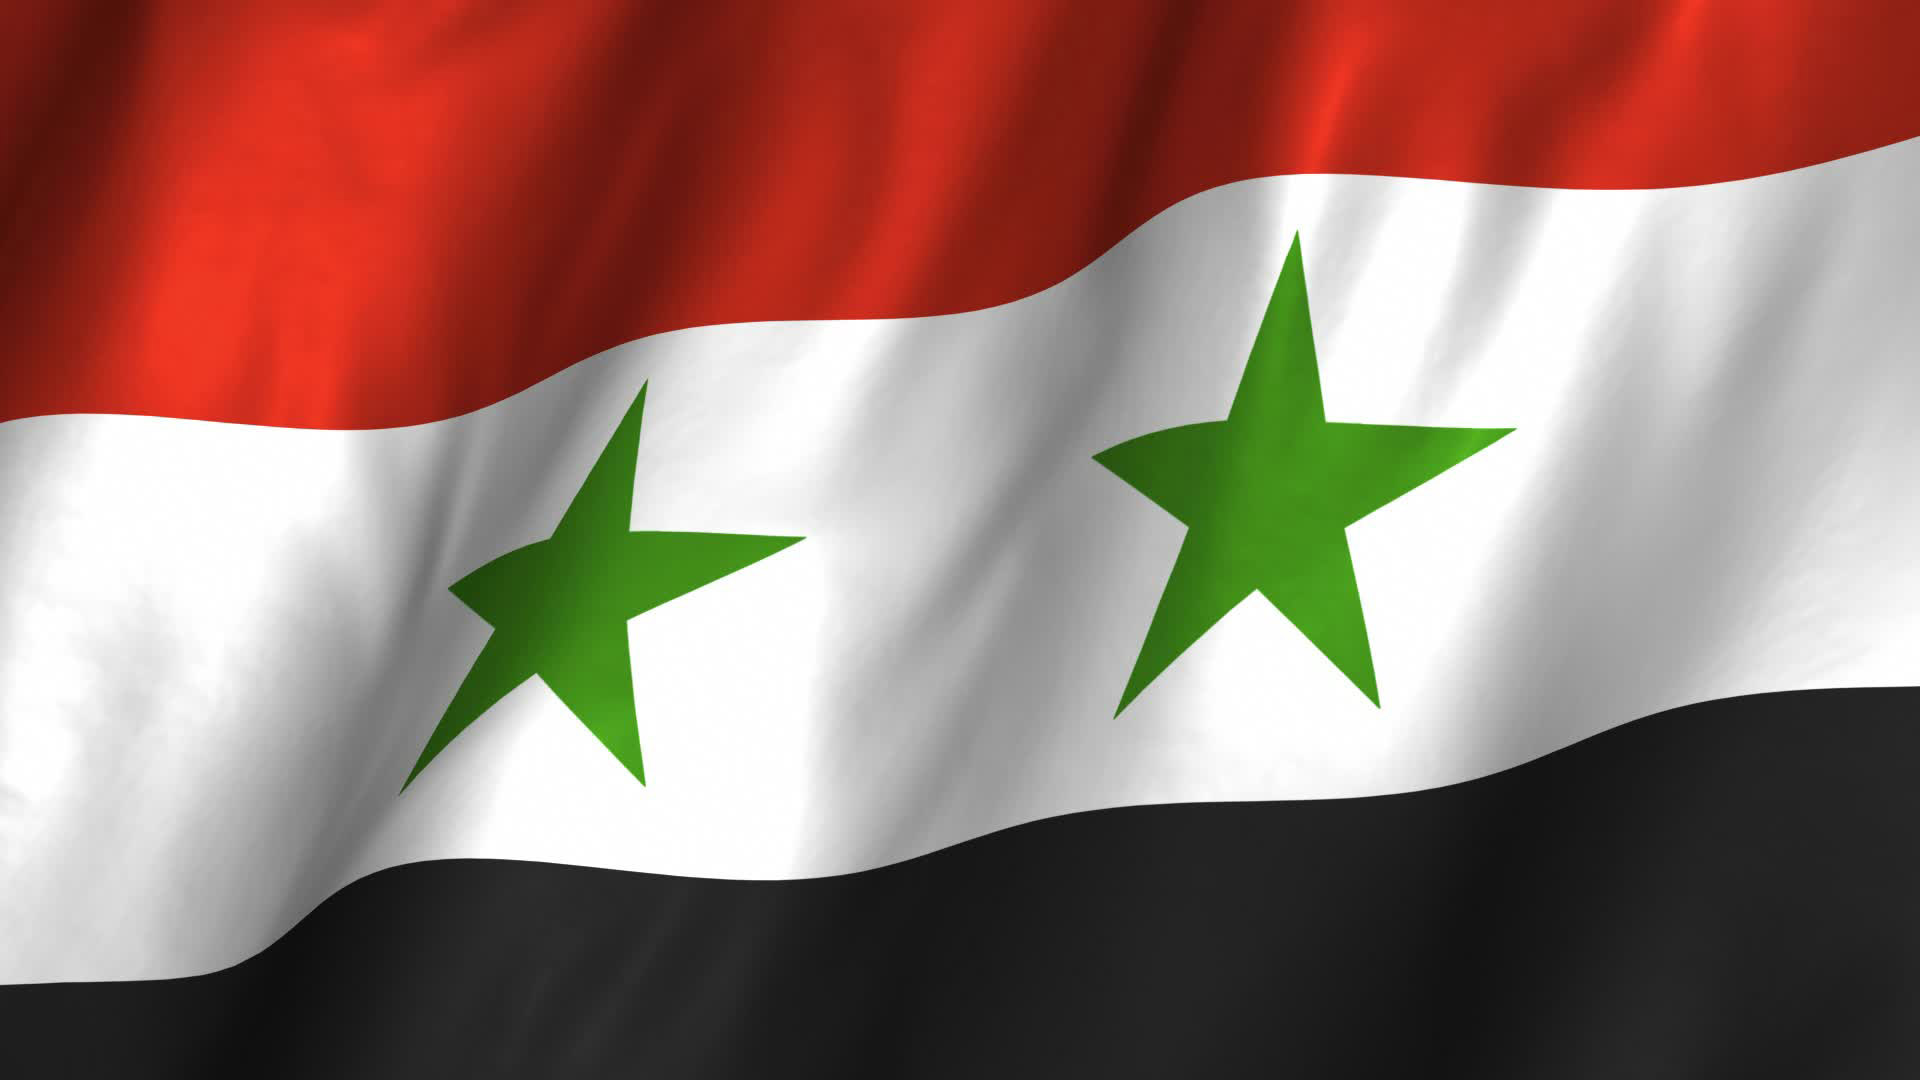 File:Flag of Syria.svg Wikimedia Commons